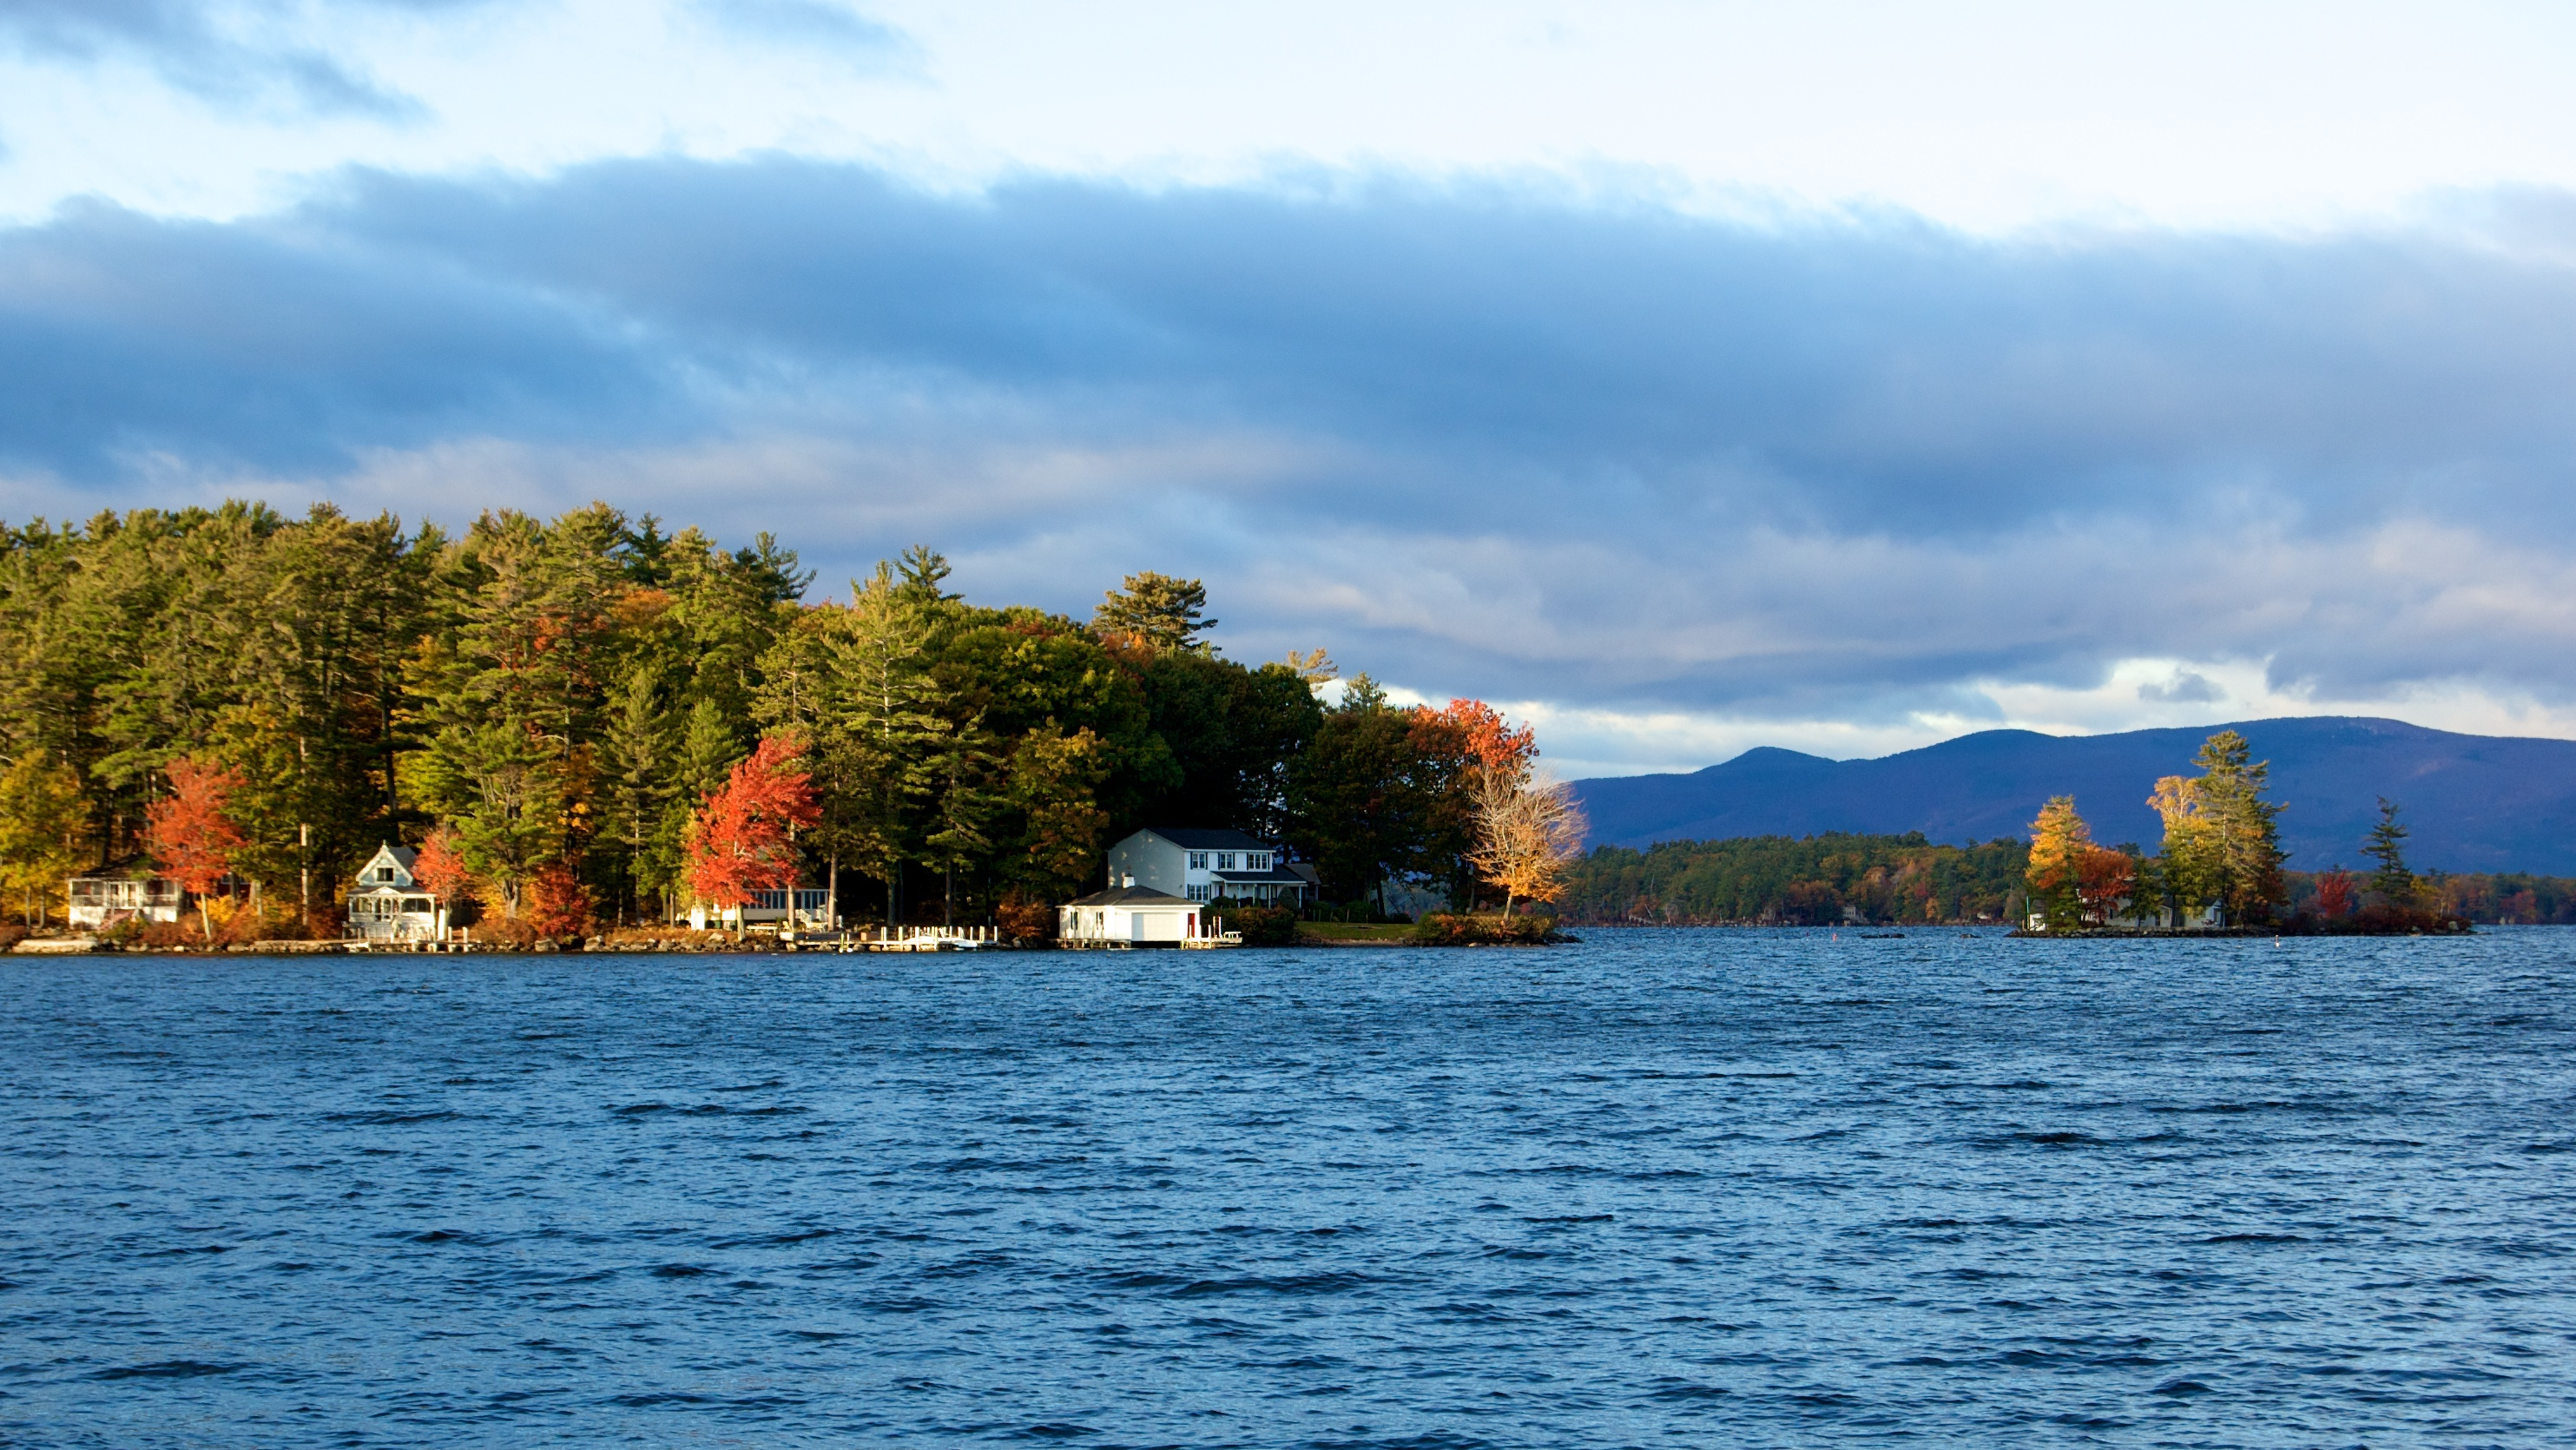 Homes on Lake Winnipesaukee